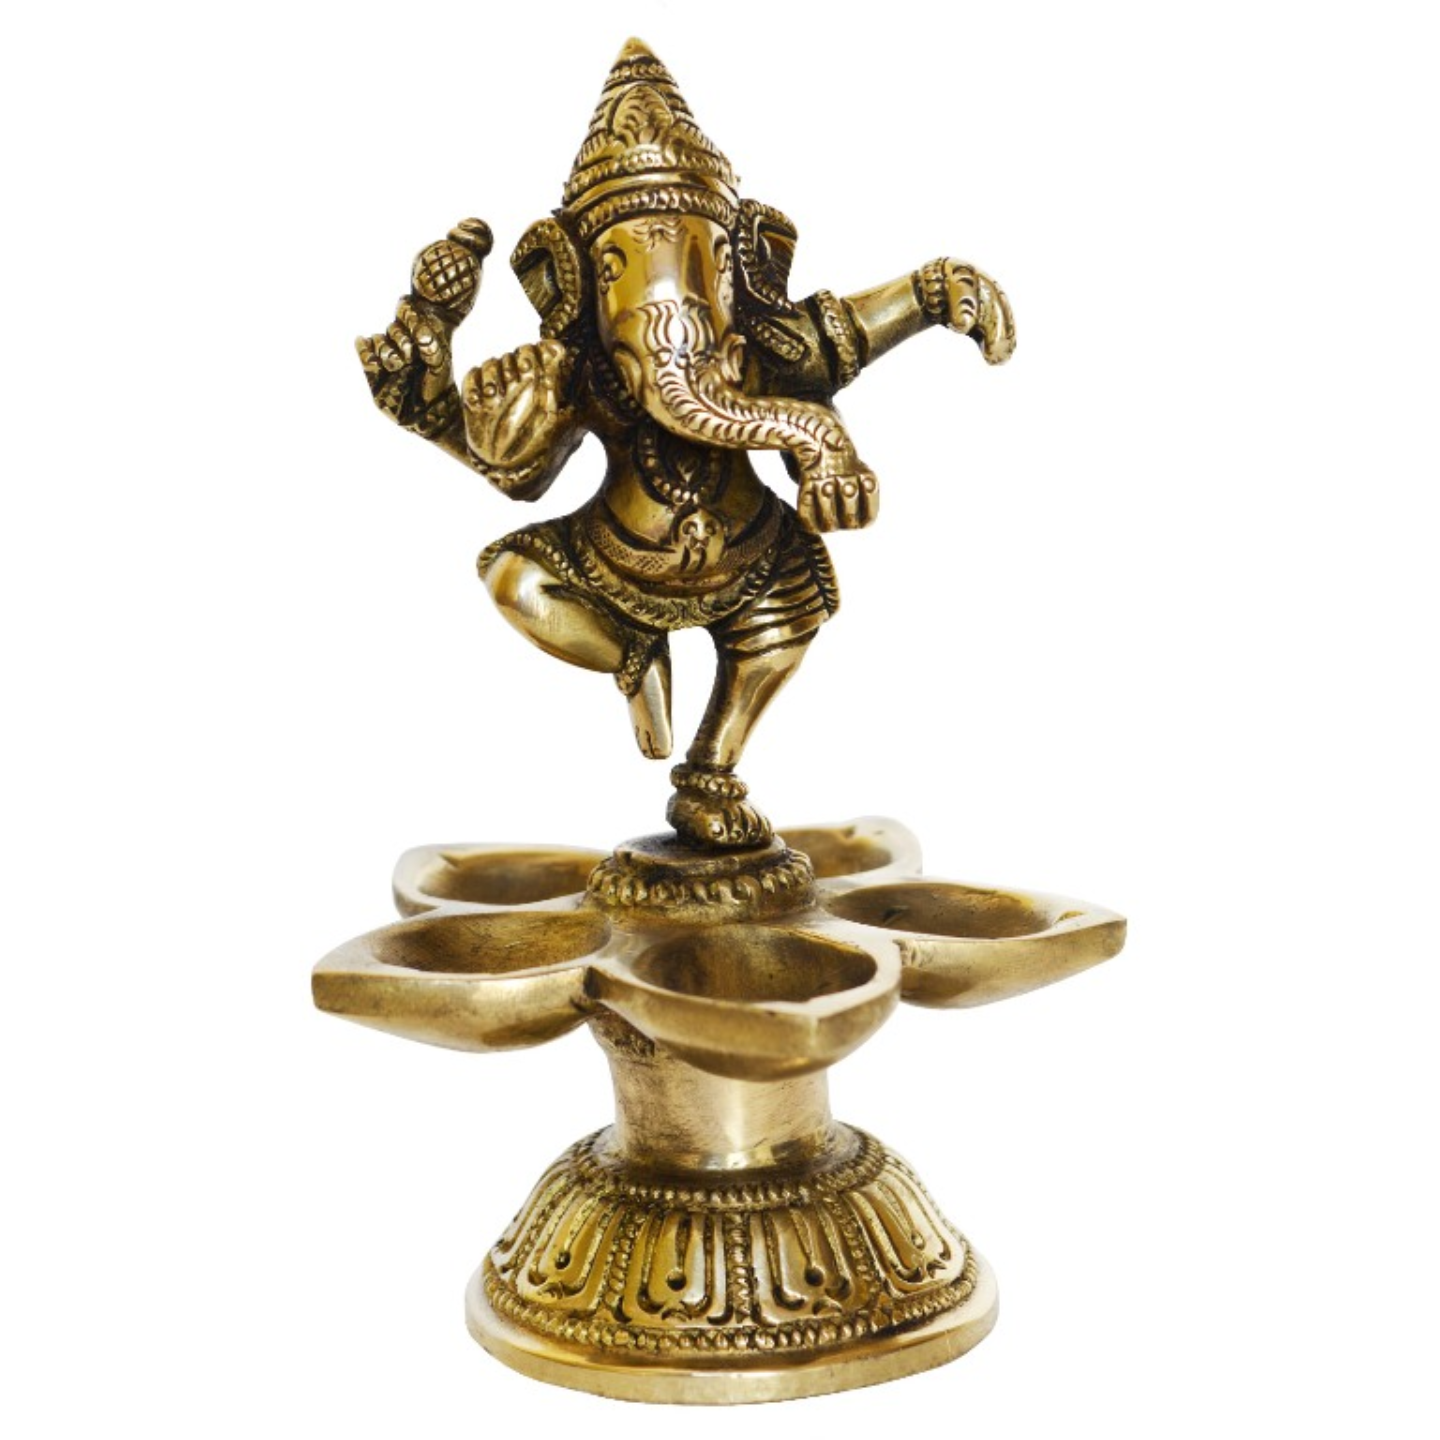 Lord Ganesha Dancing Statue On Deepak Made of Brass - 6 Inch (BS1192 A)